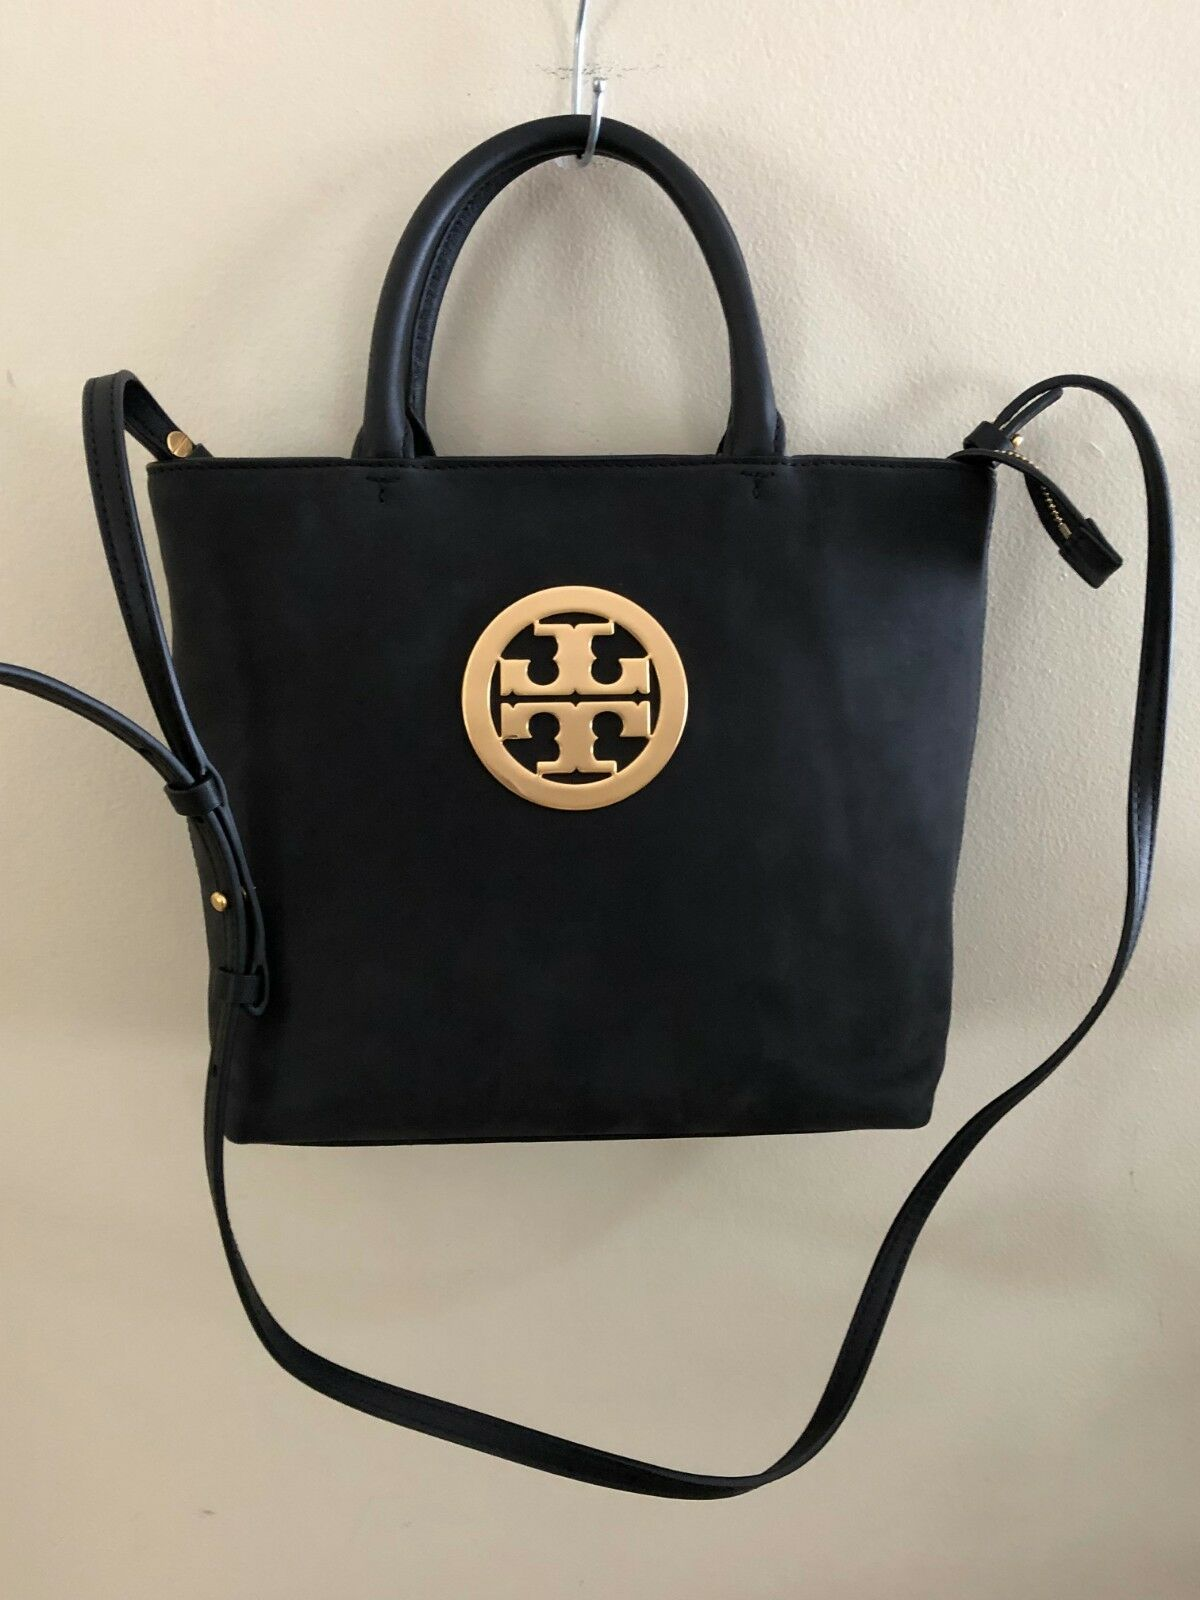 dc67f8b38cc 52872 Tory Burch Black Leather Charlie Small Convertible Tote for sale  online